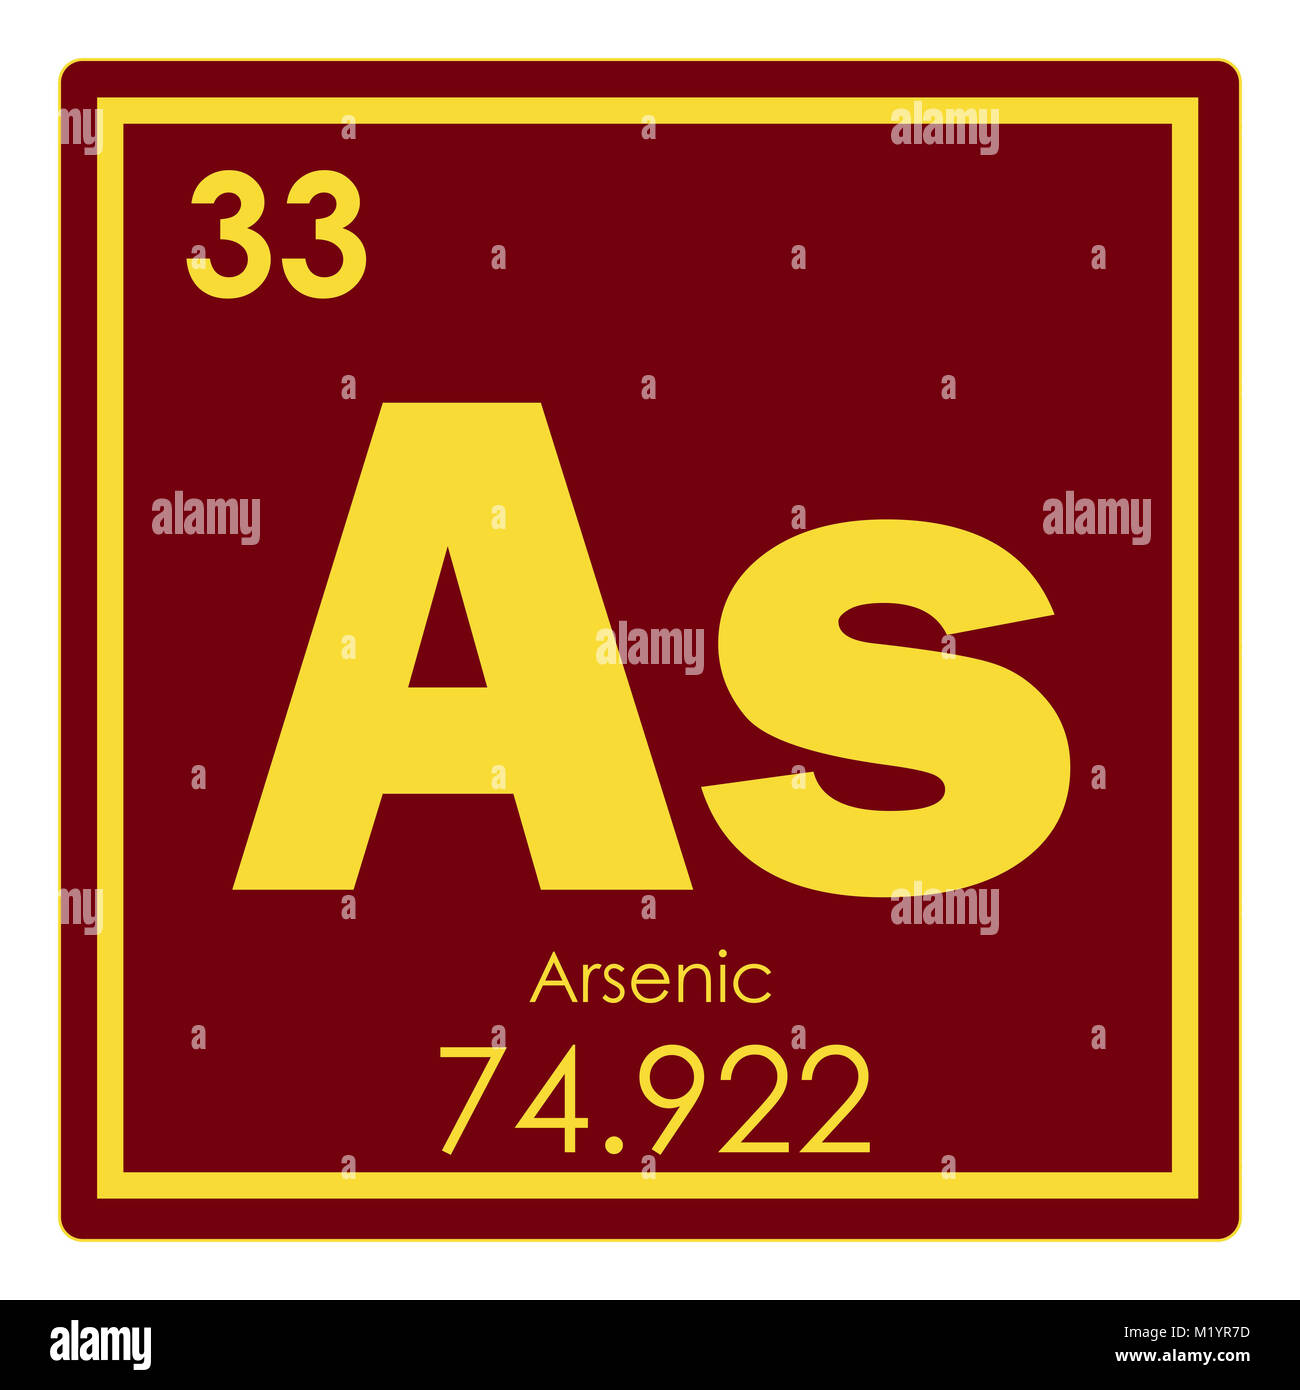 Arsenic chemical element periodic table science symbol stock photo arsenic chemical element periodic table science symbol biocorpaavc Image collections